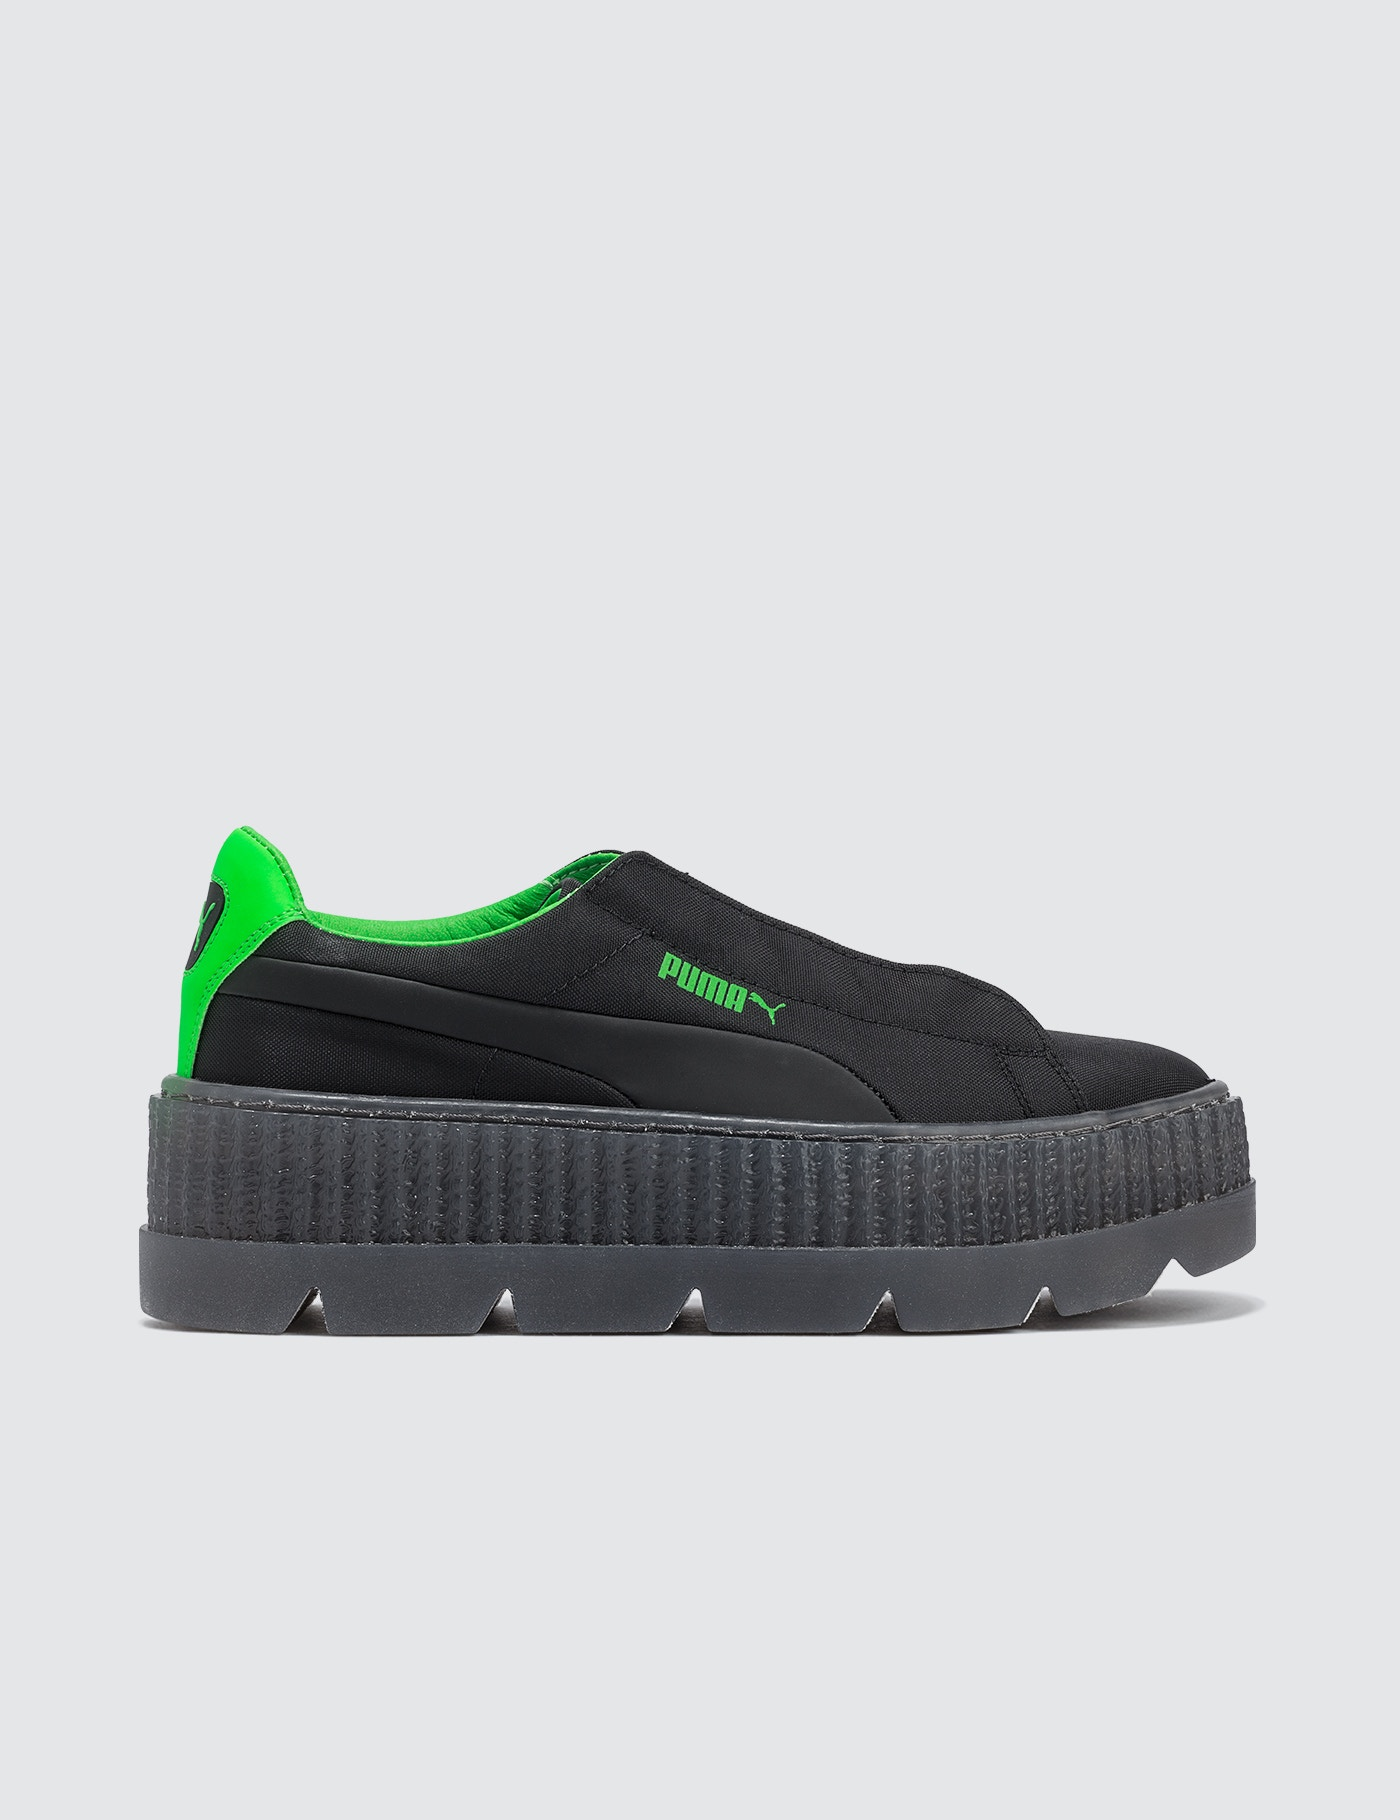 f25d623d1c8d09 Buy Original Fenty Puma By Rihanna Cleated Creeper Surf Womens ...